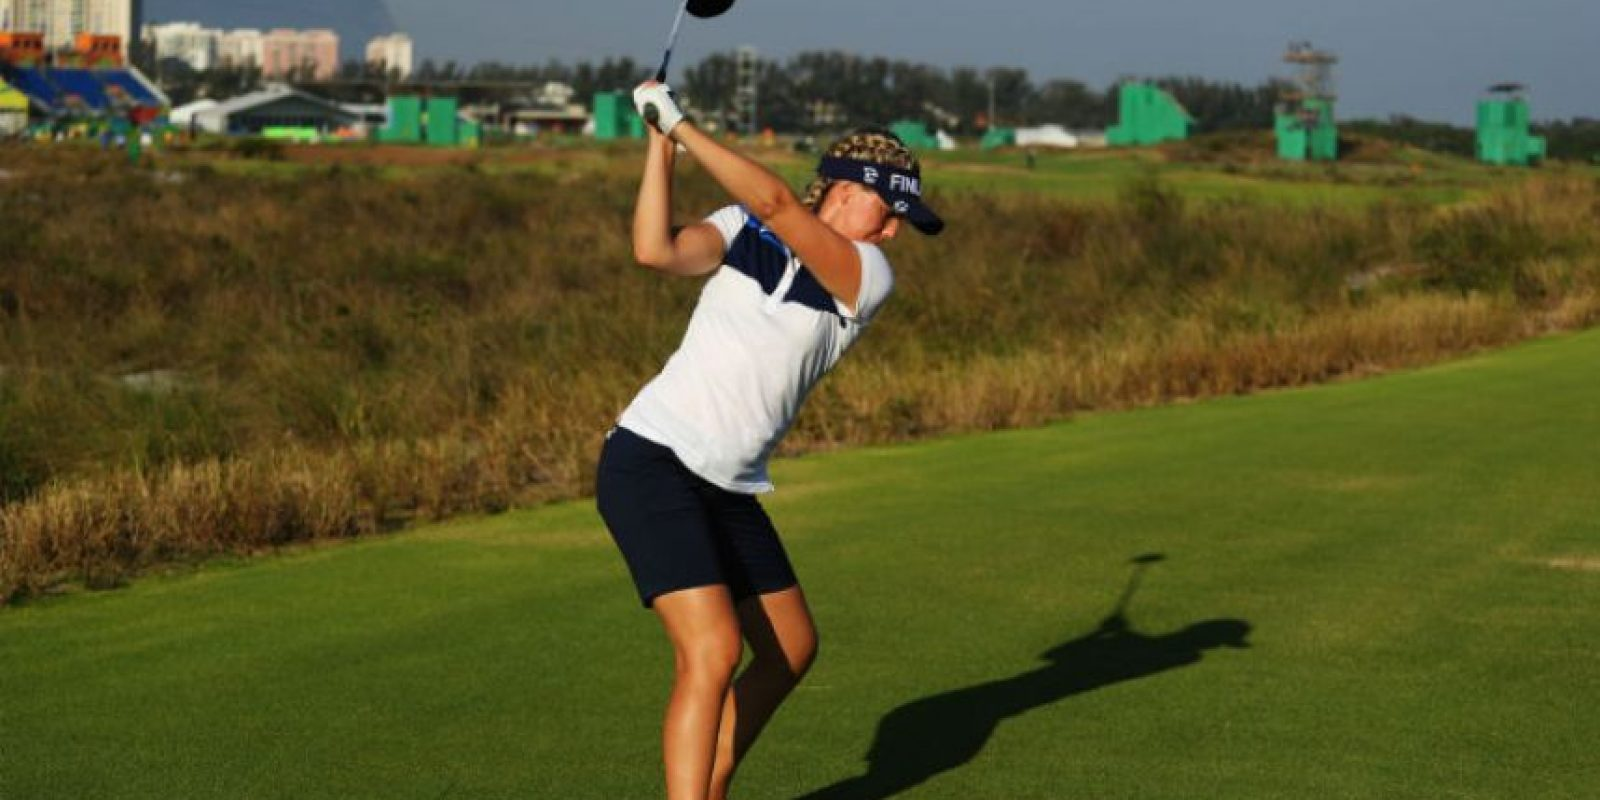 Golf (11 relaciones sexuales al mes) Foto: Getty Images